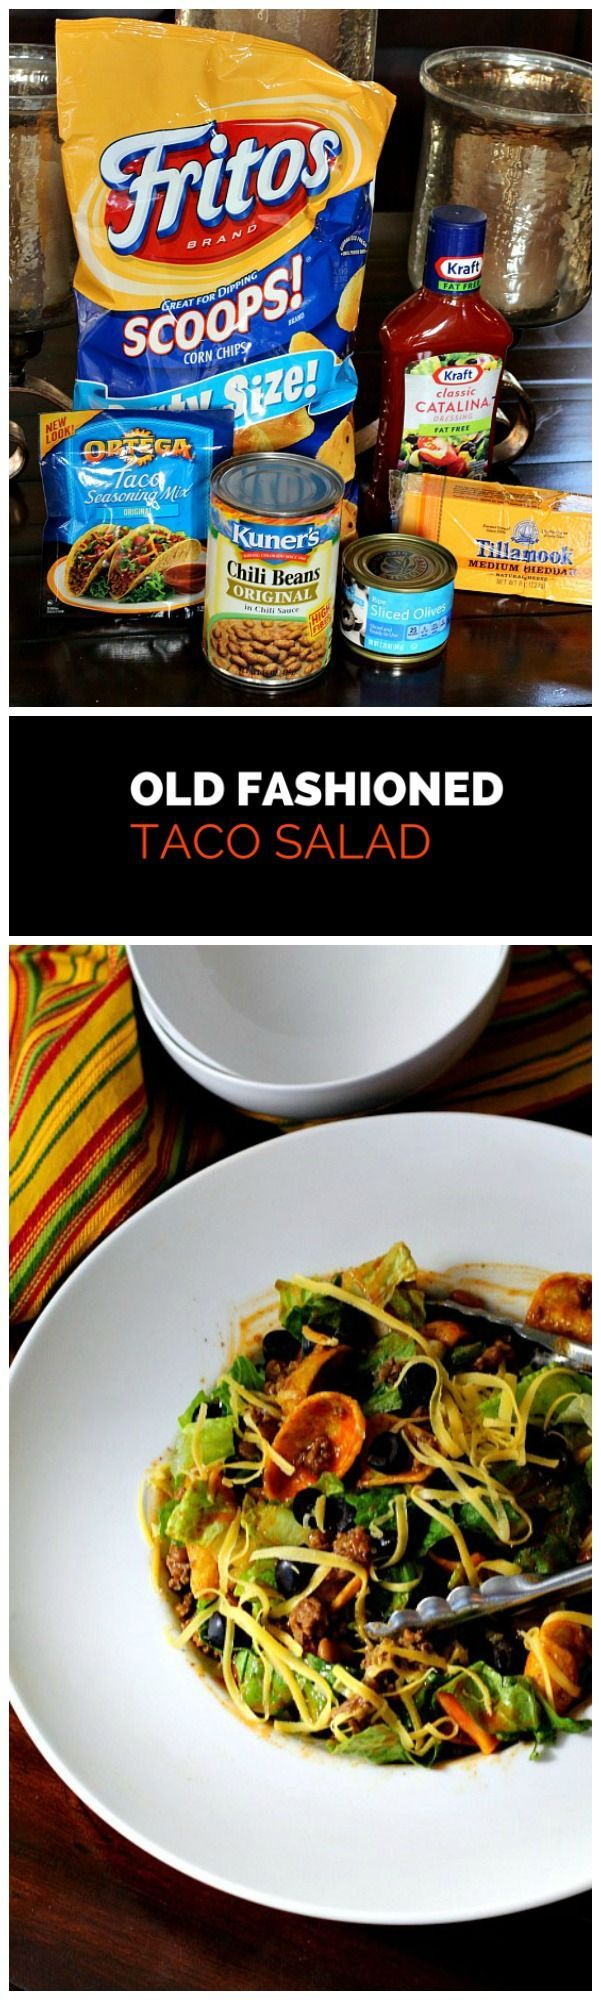 A blast from the past. Old fashioned Taco Salad Recipe. With lettuce, tomato, Catalina dressing, taco seasoned ground beef, chile beans and topped with plenty of grated cheese. This is an easy weeknight meal and extremely kid friendly.